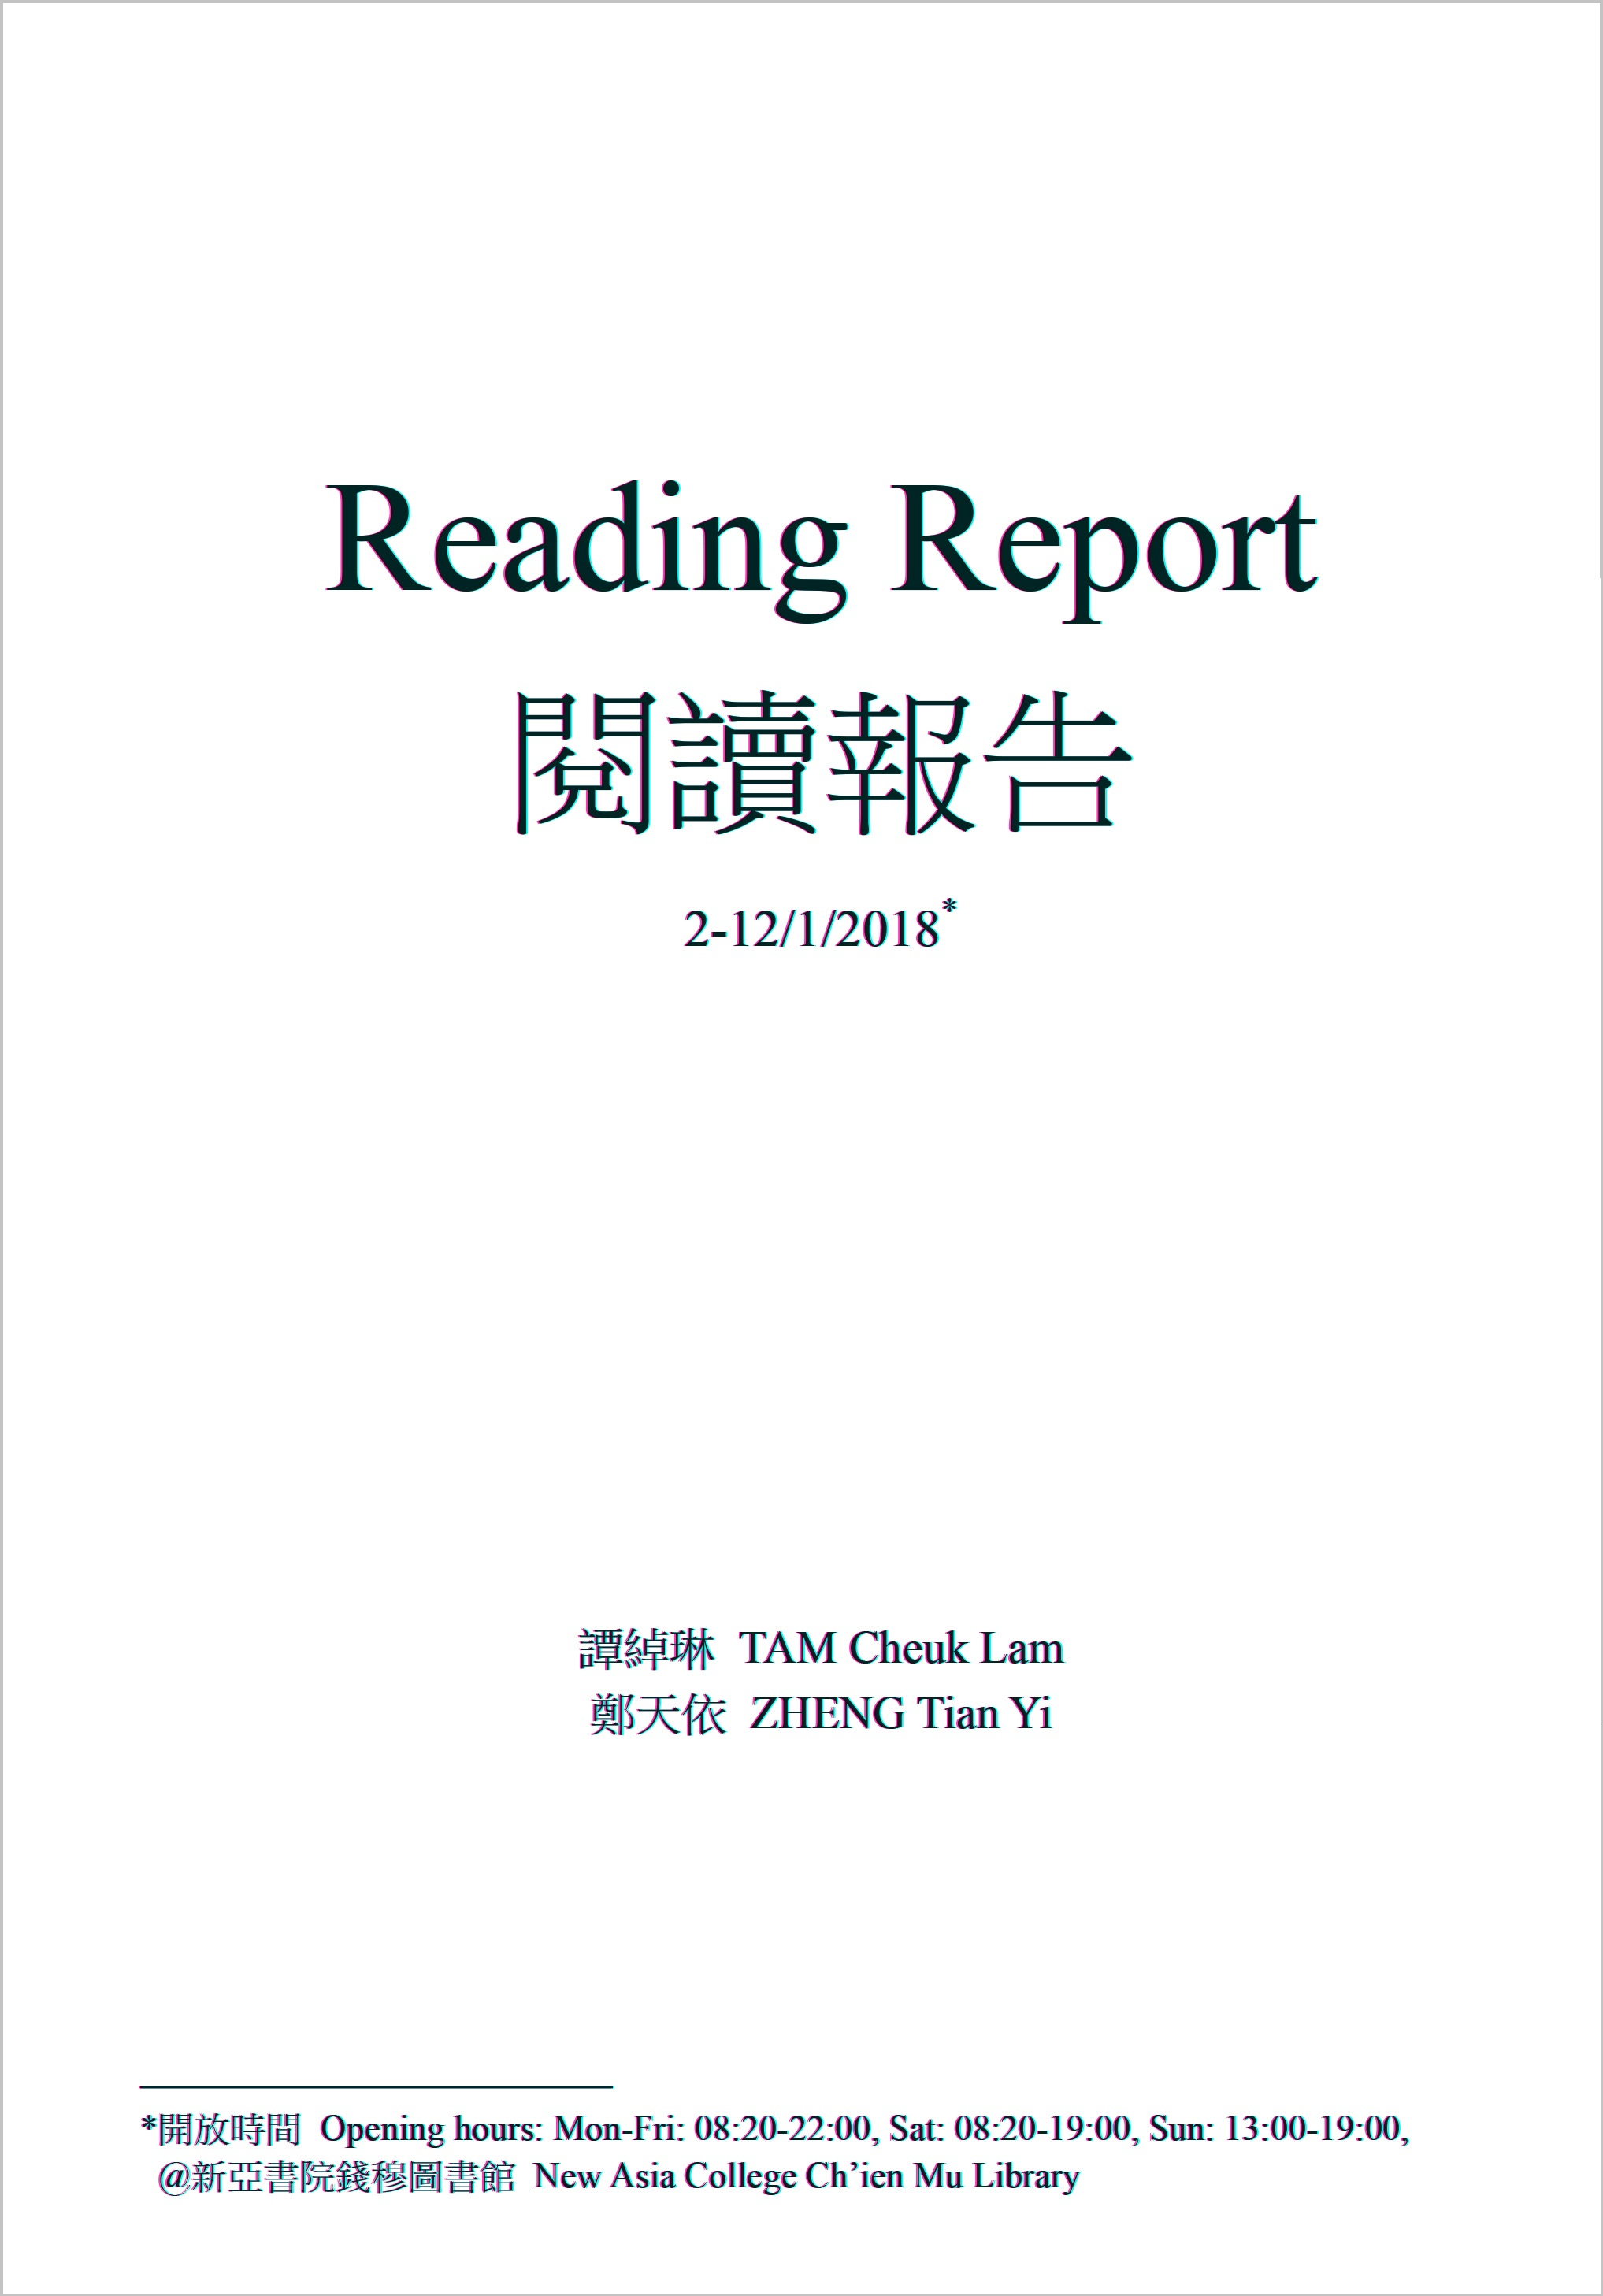 Reading Report  閱讀報告